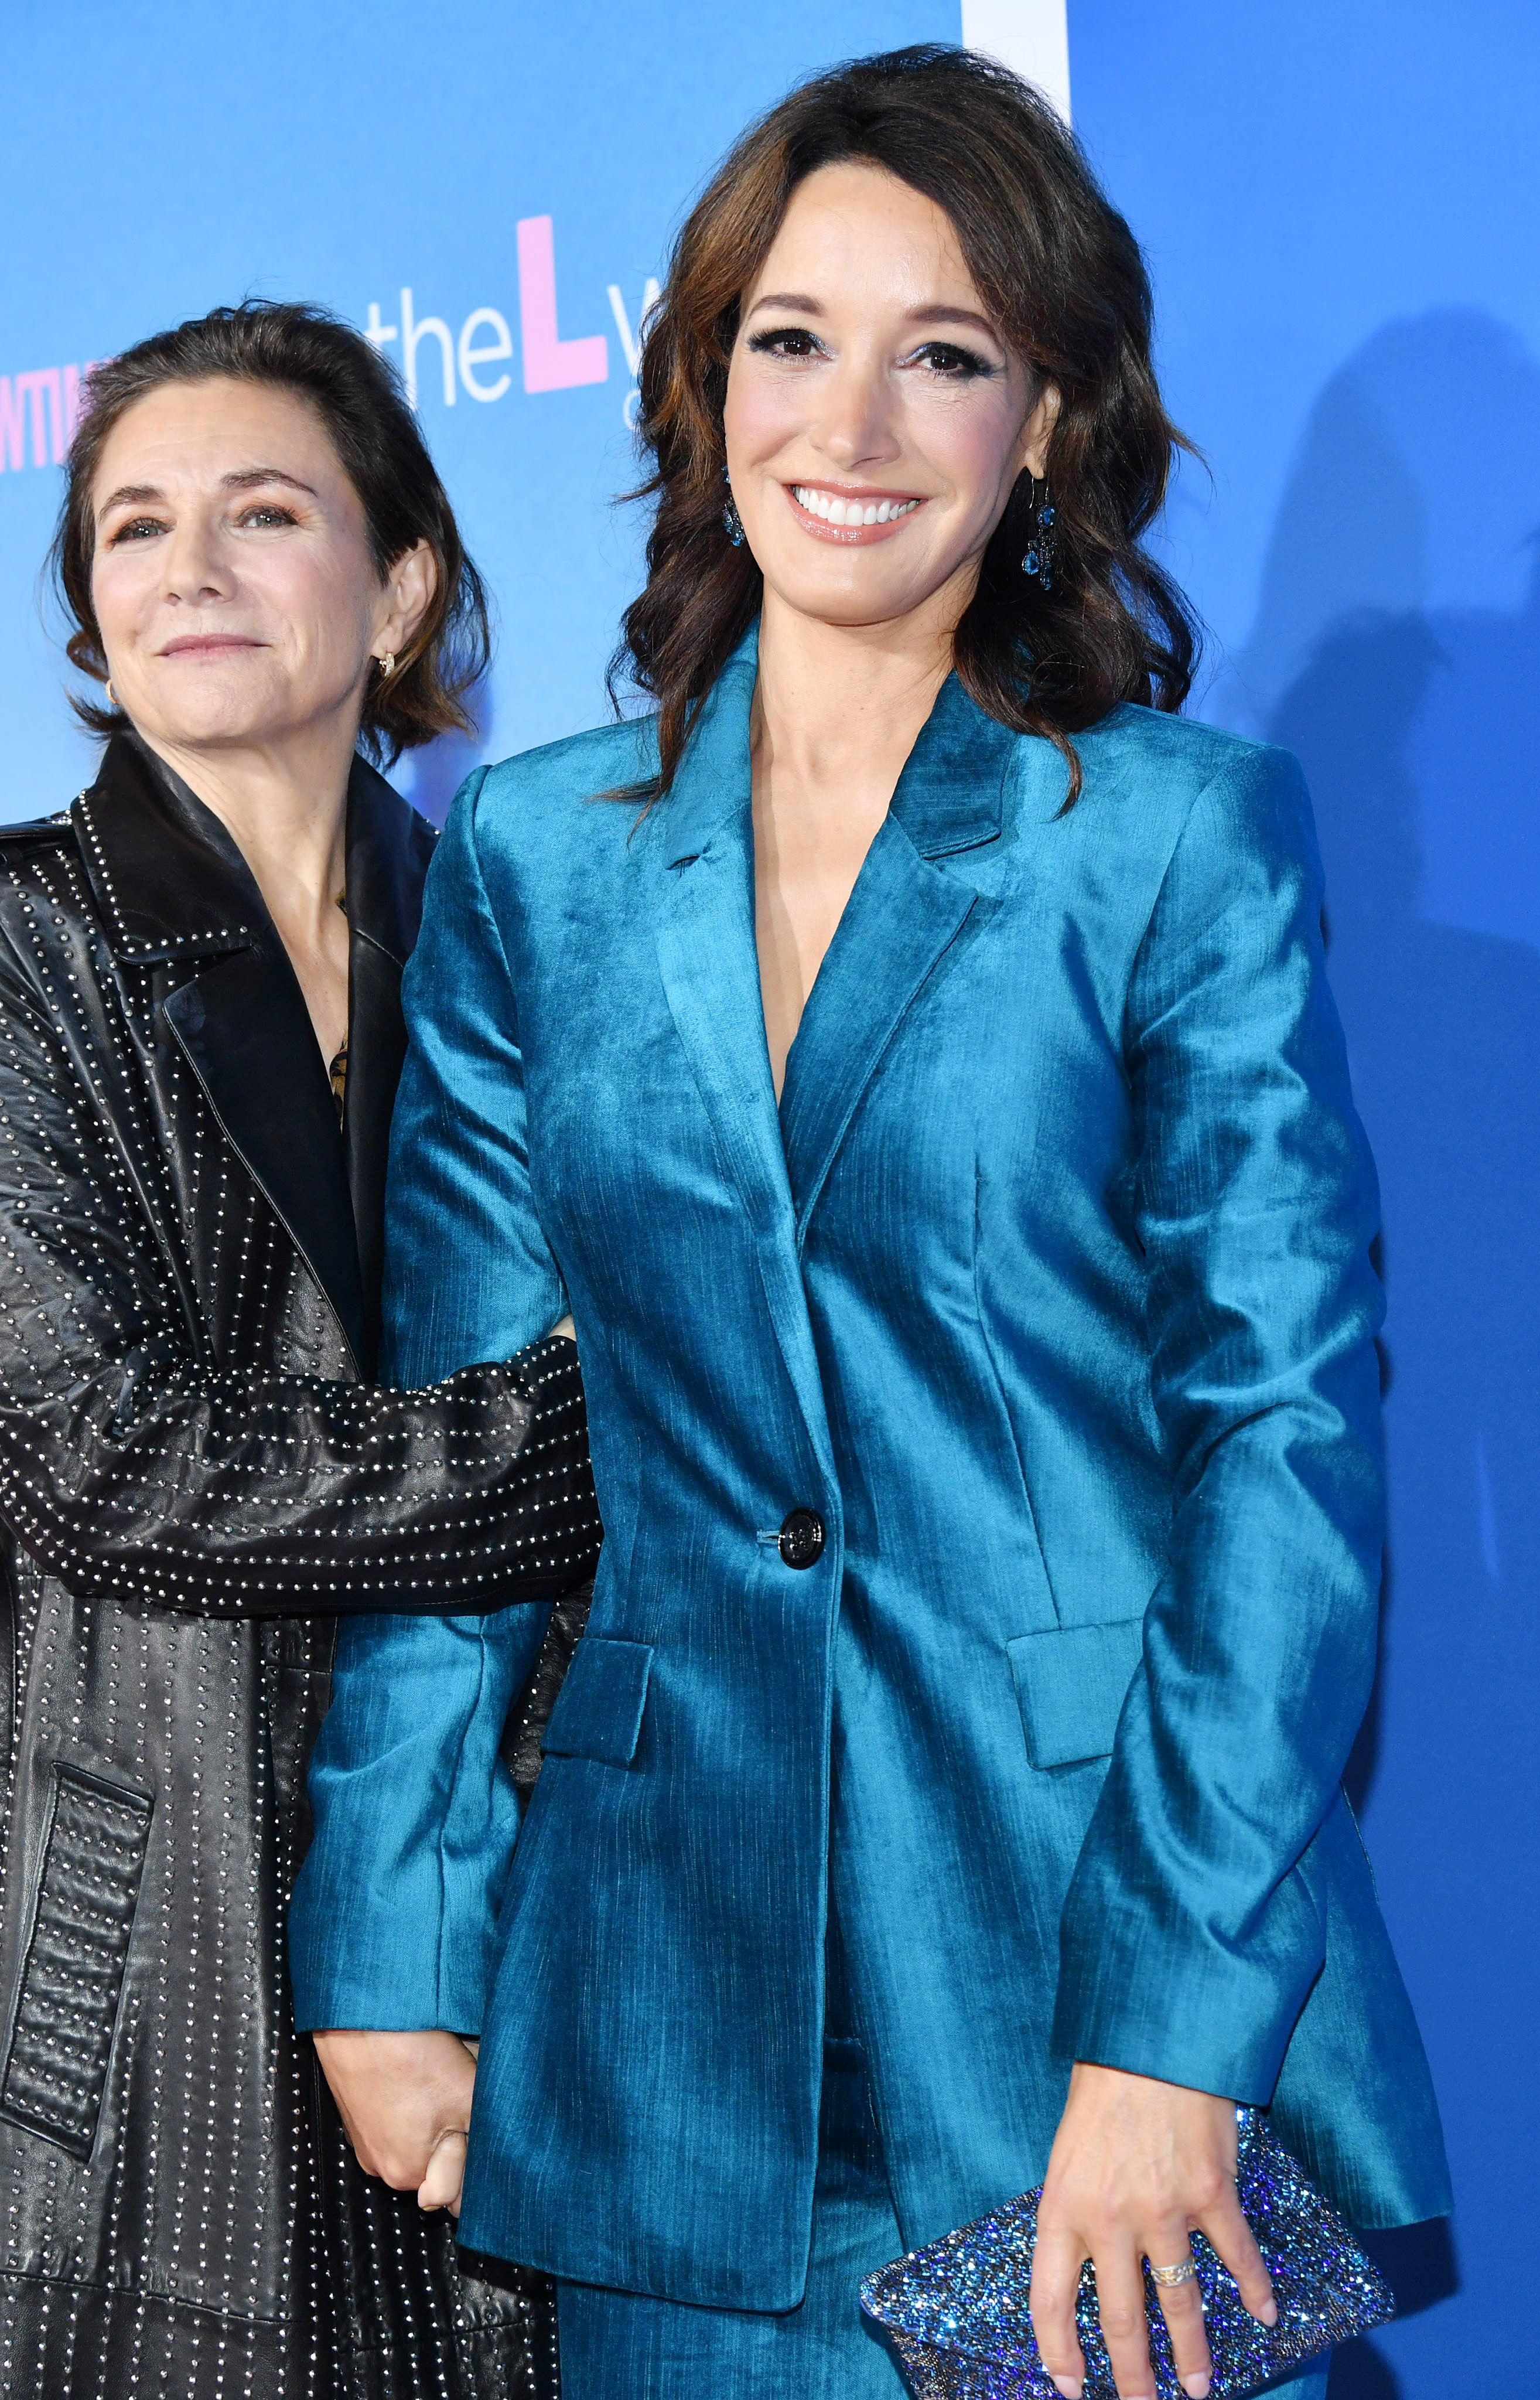 Jennifer Beals and Ilene Chaiken at an event for The L Word: Generation Q (2019)